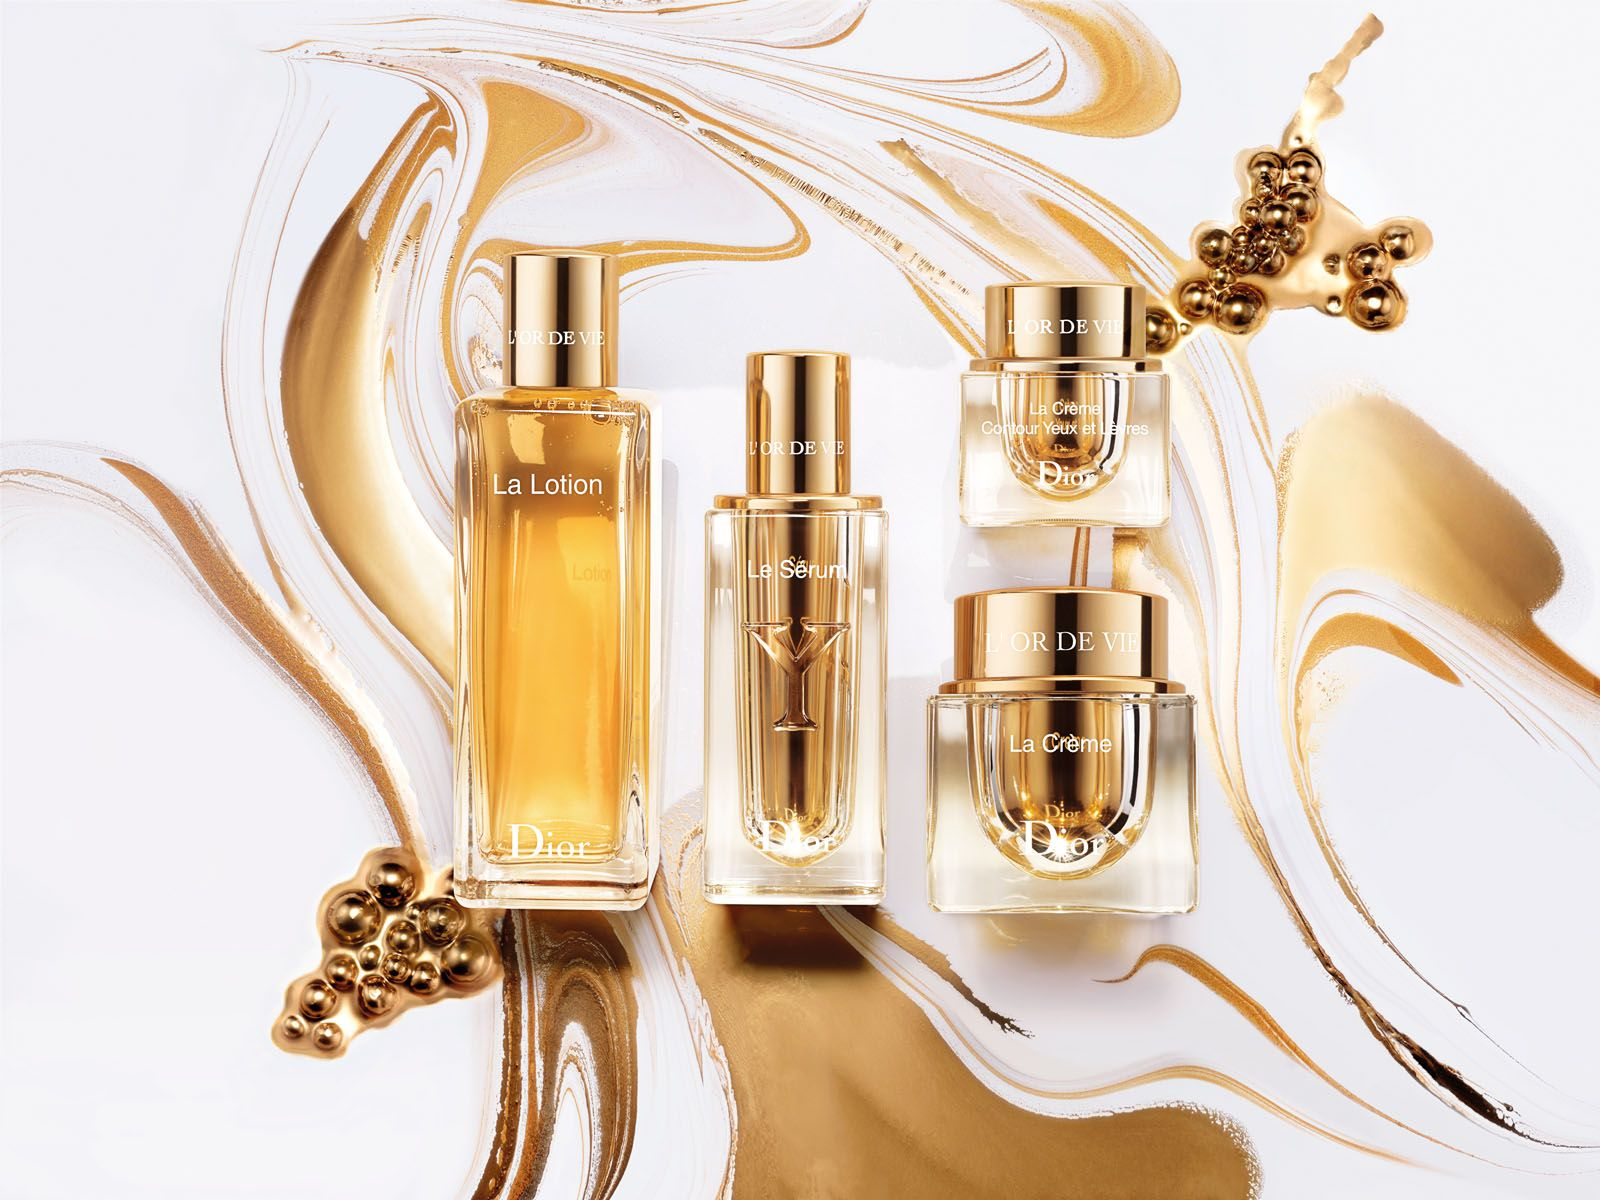 Besides Le Sérum, the Dior Skincare L'Or de Vie range also comprises La Lotion, La Crème Contour Yeux et Lèvres and La Crème, all of which slow down the skin ageing process